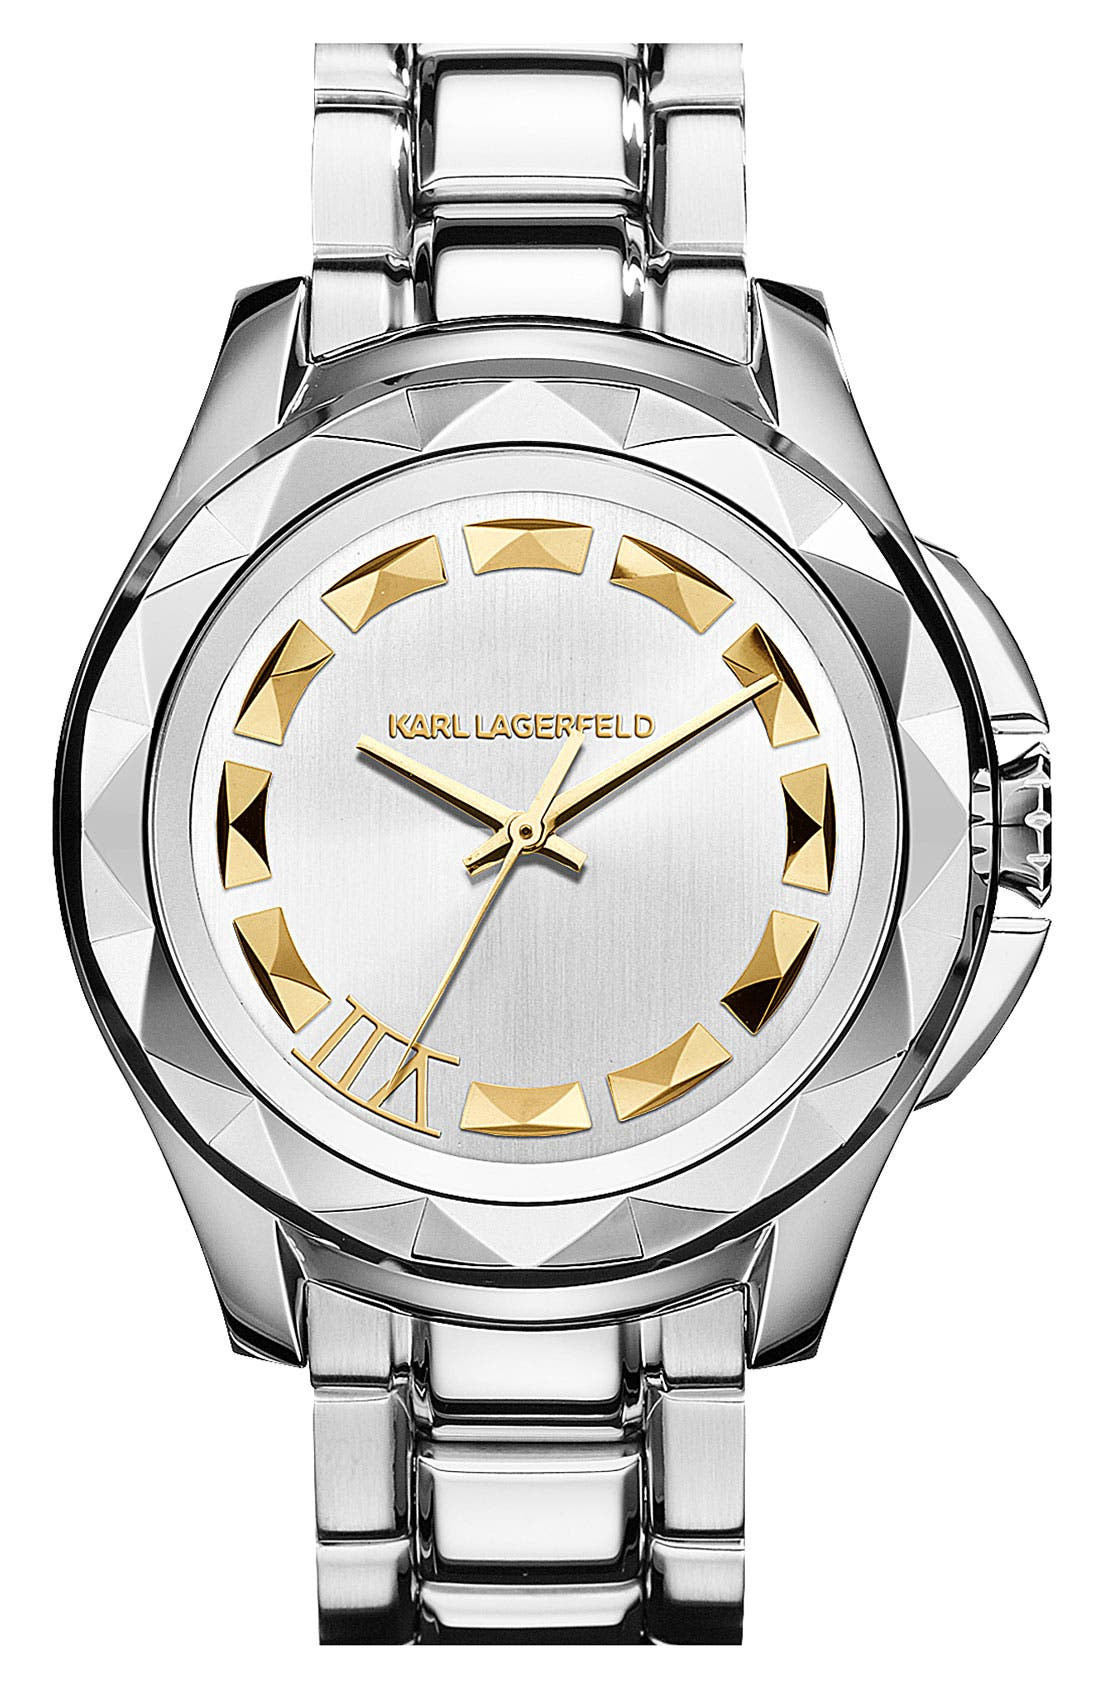 Main Image - KARL LAGERFELD '7' Faceted Bezel Bracelet Watch, 44mm x 53mm